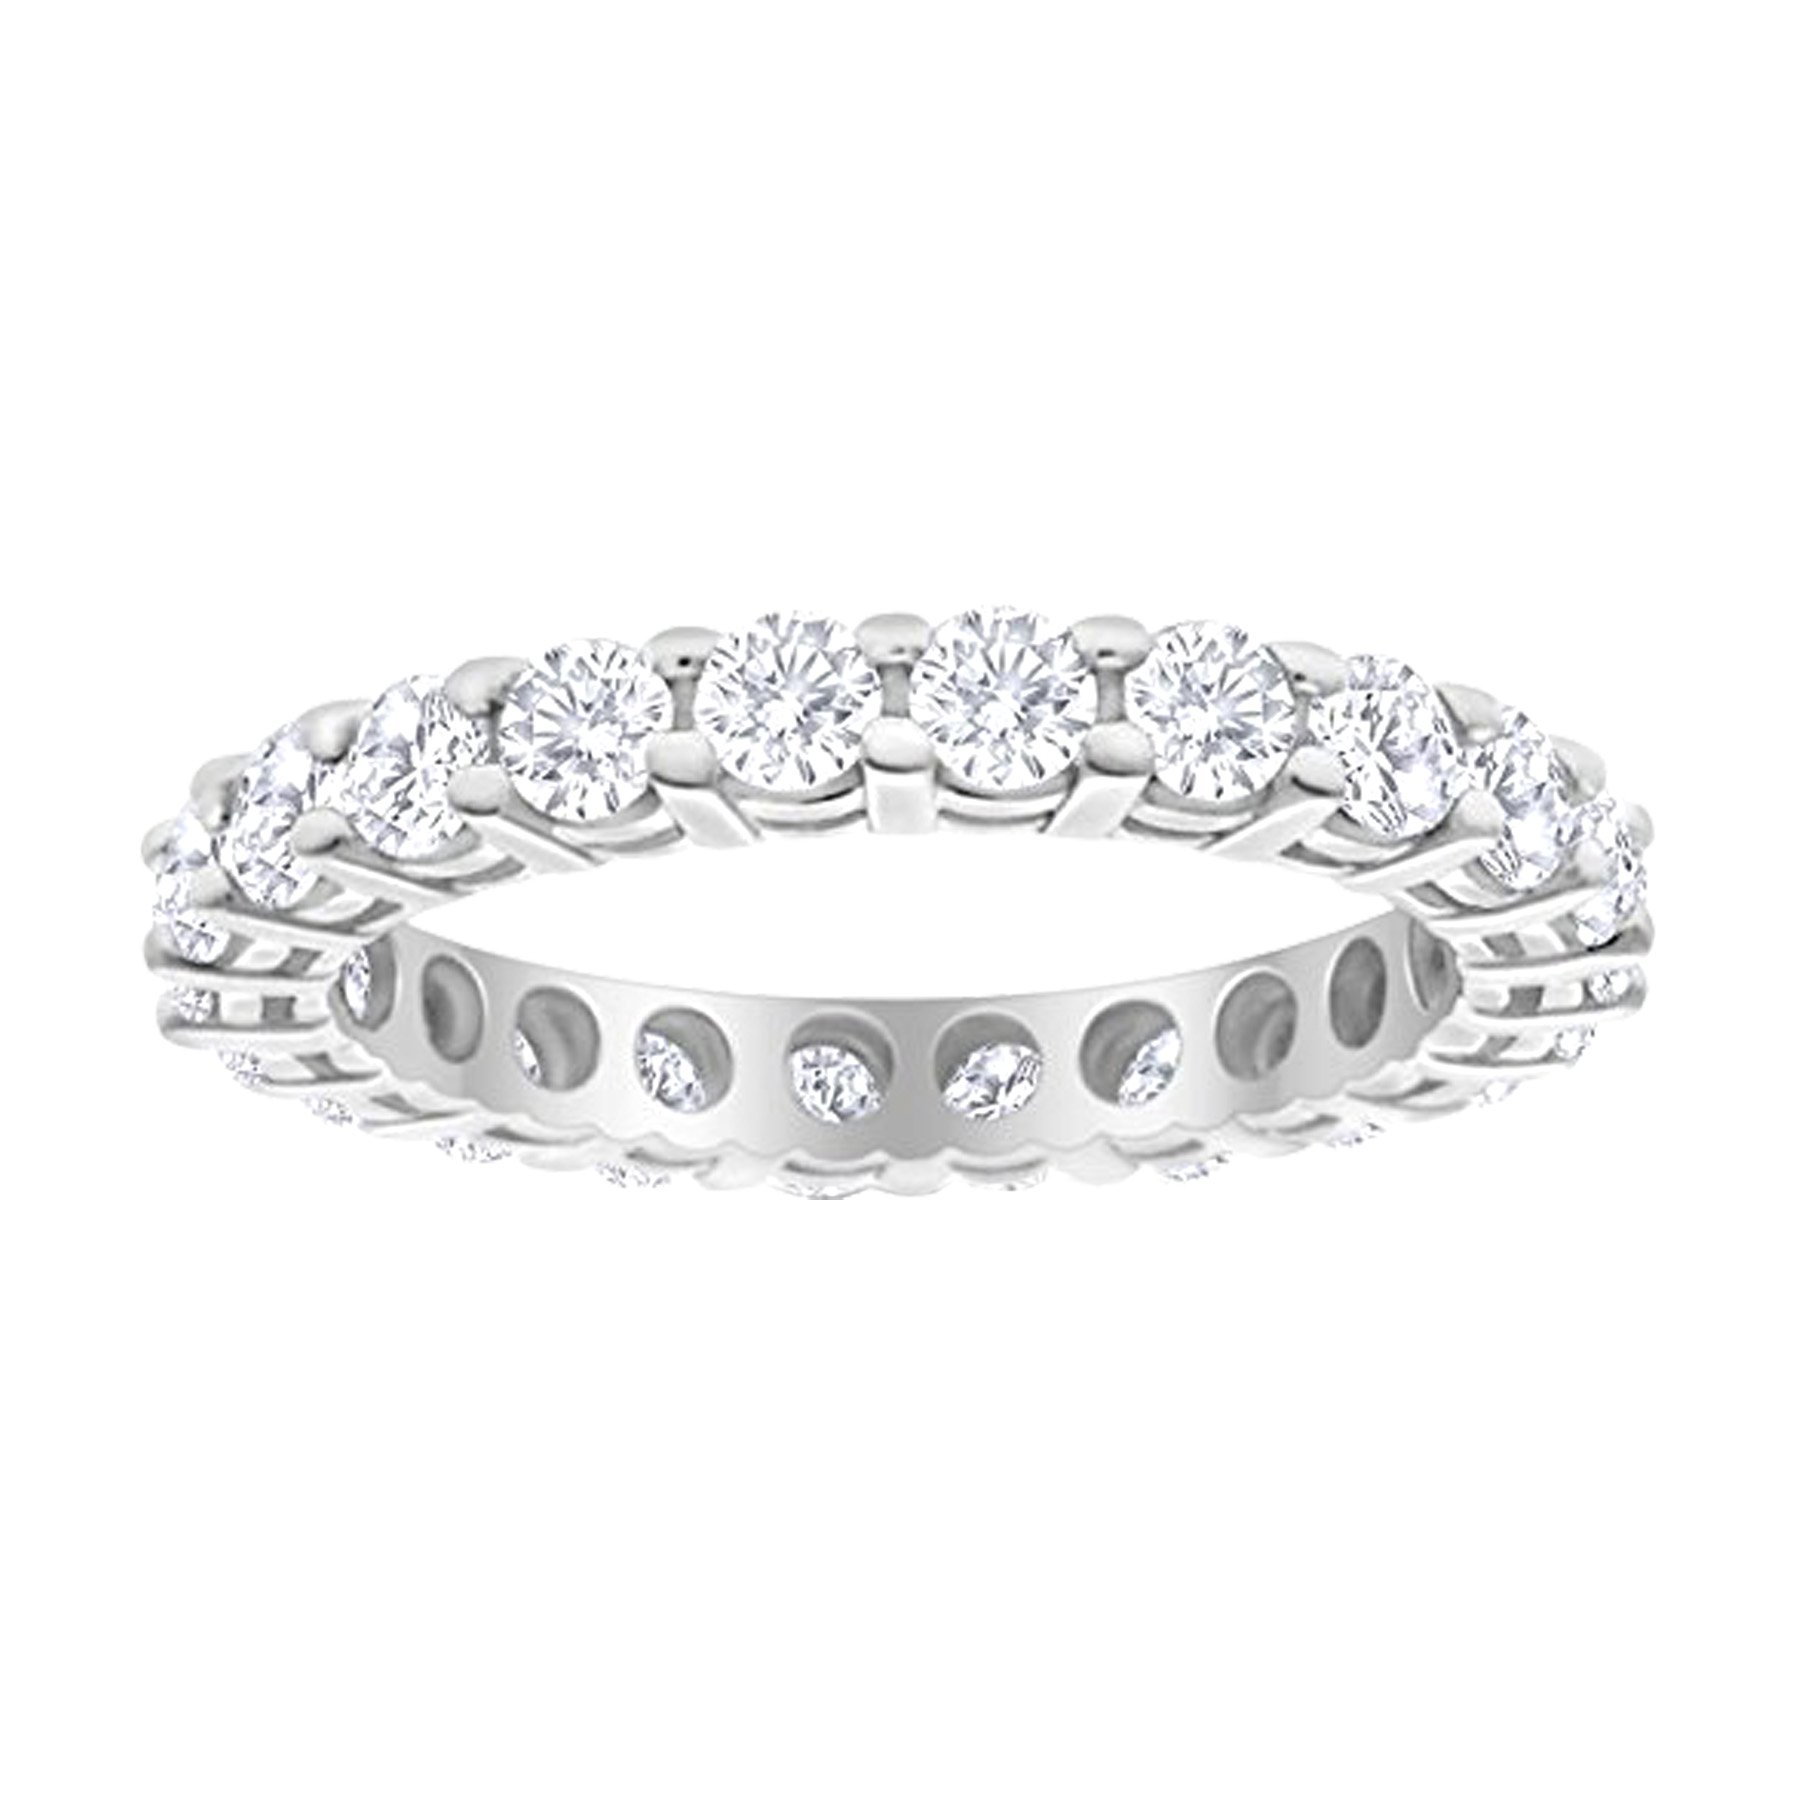 1 Carat (ctw) 14K White Gold Round Diamond Ladies Eternity Wedding Anniversary Stackable Ring Band Value Collection by Houston Diamond District